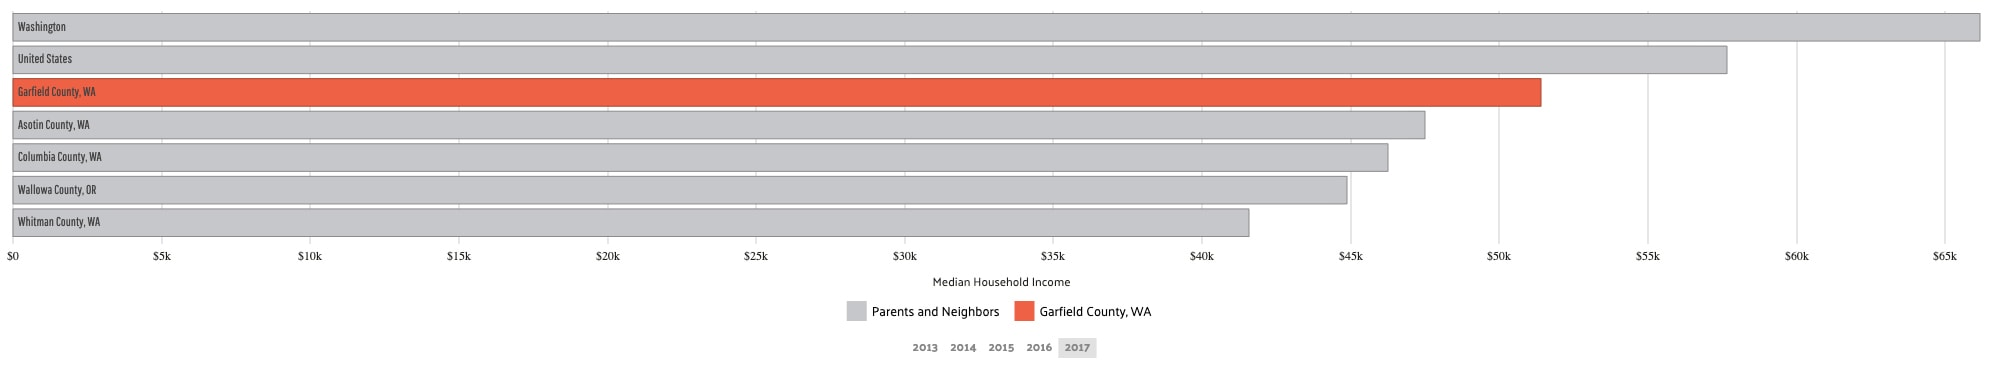 Median Household Income_garfield